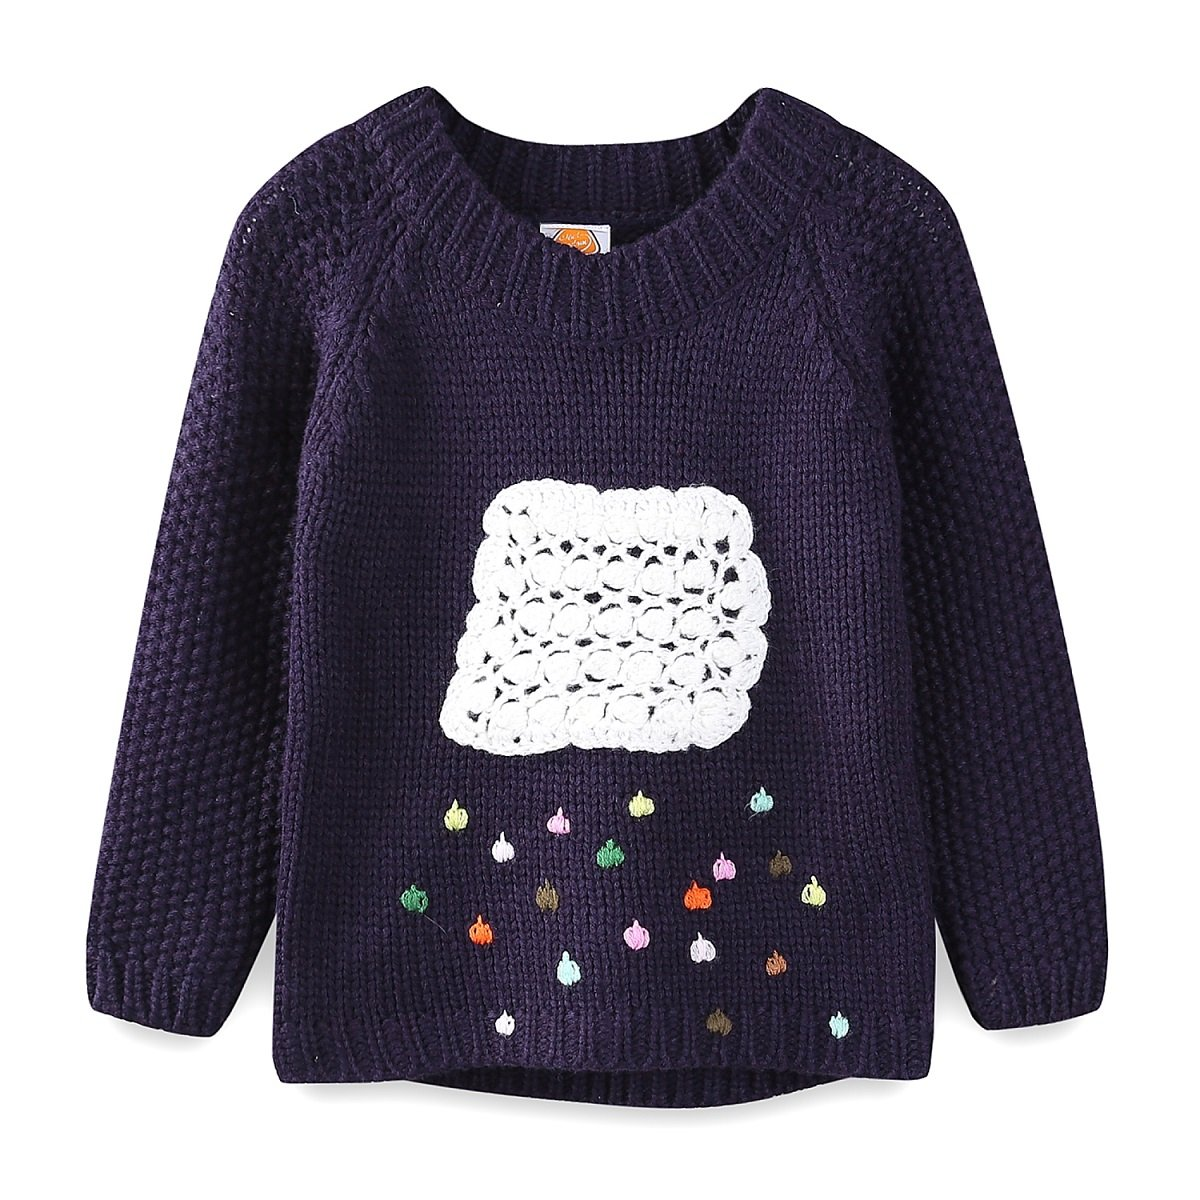 UWESPRING Girls Fashion Cartoon Clouds Pattern Knit Sweaters Pullover 6-7T Navy